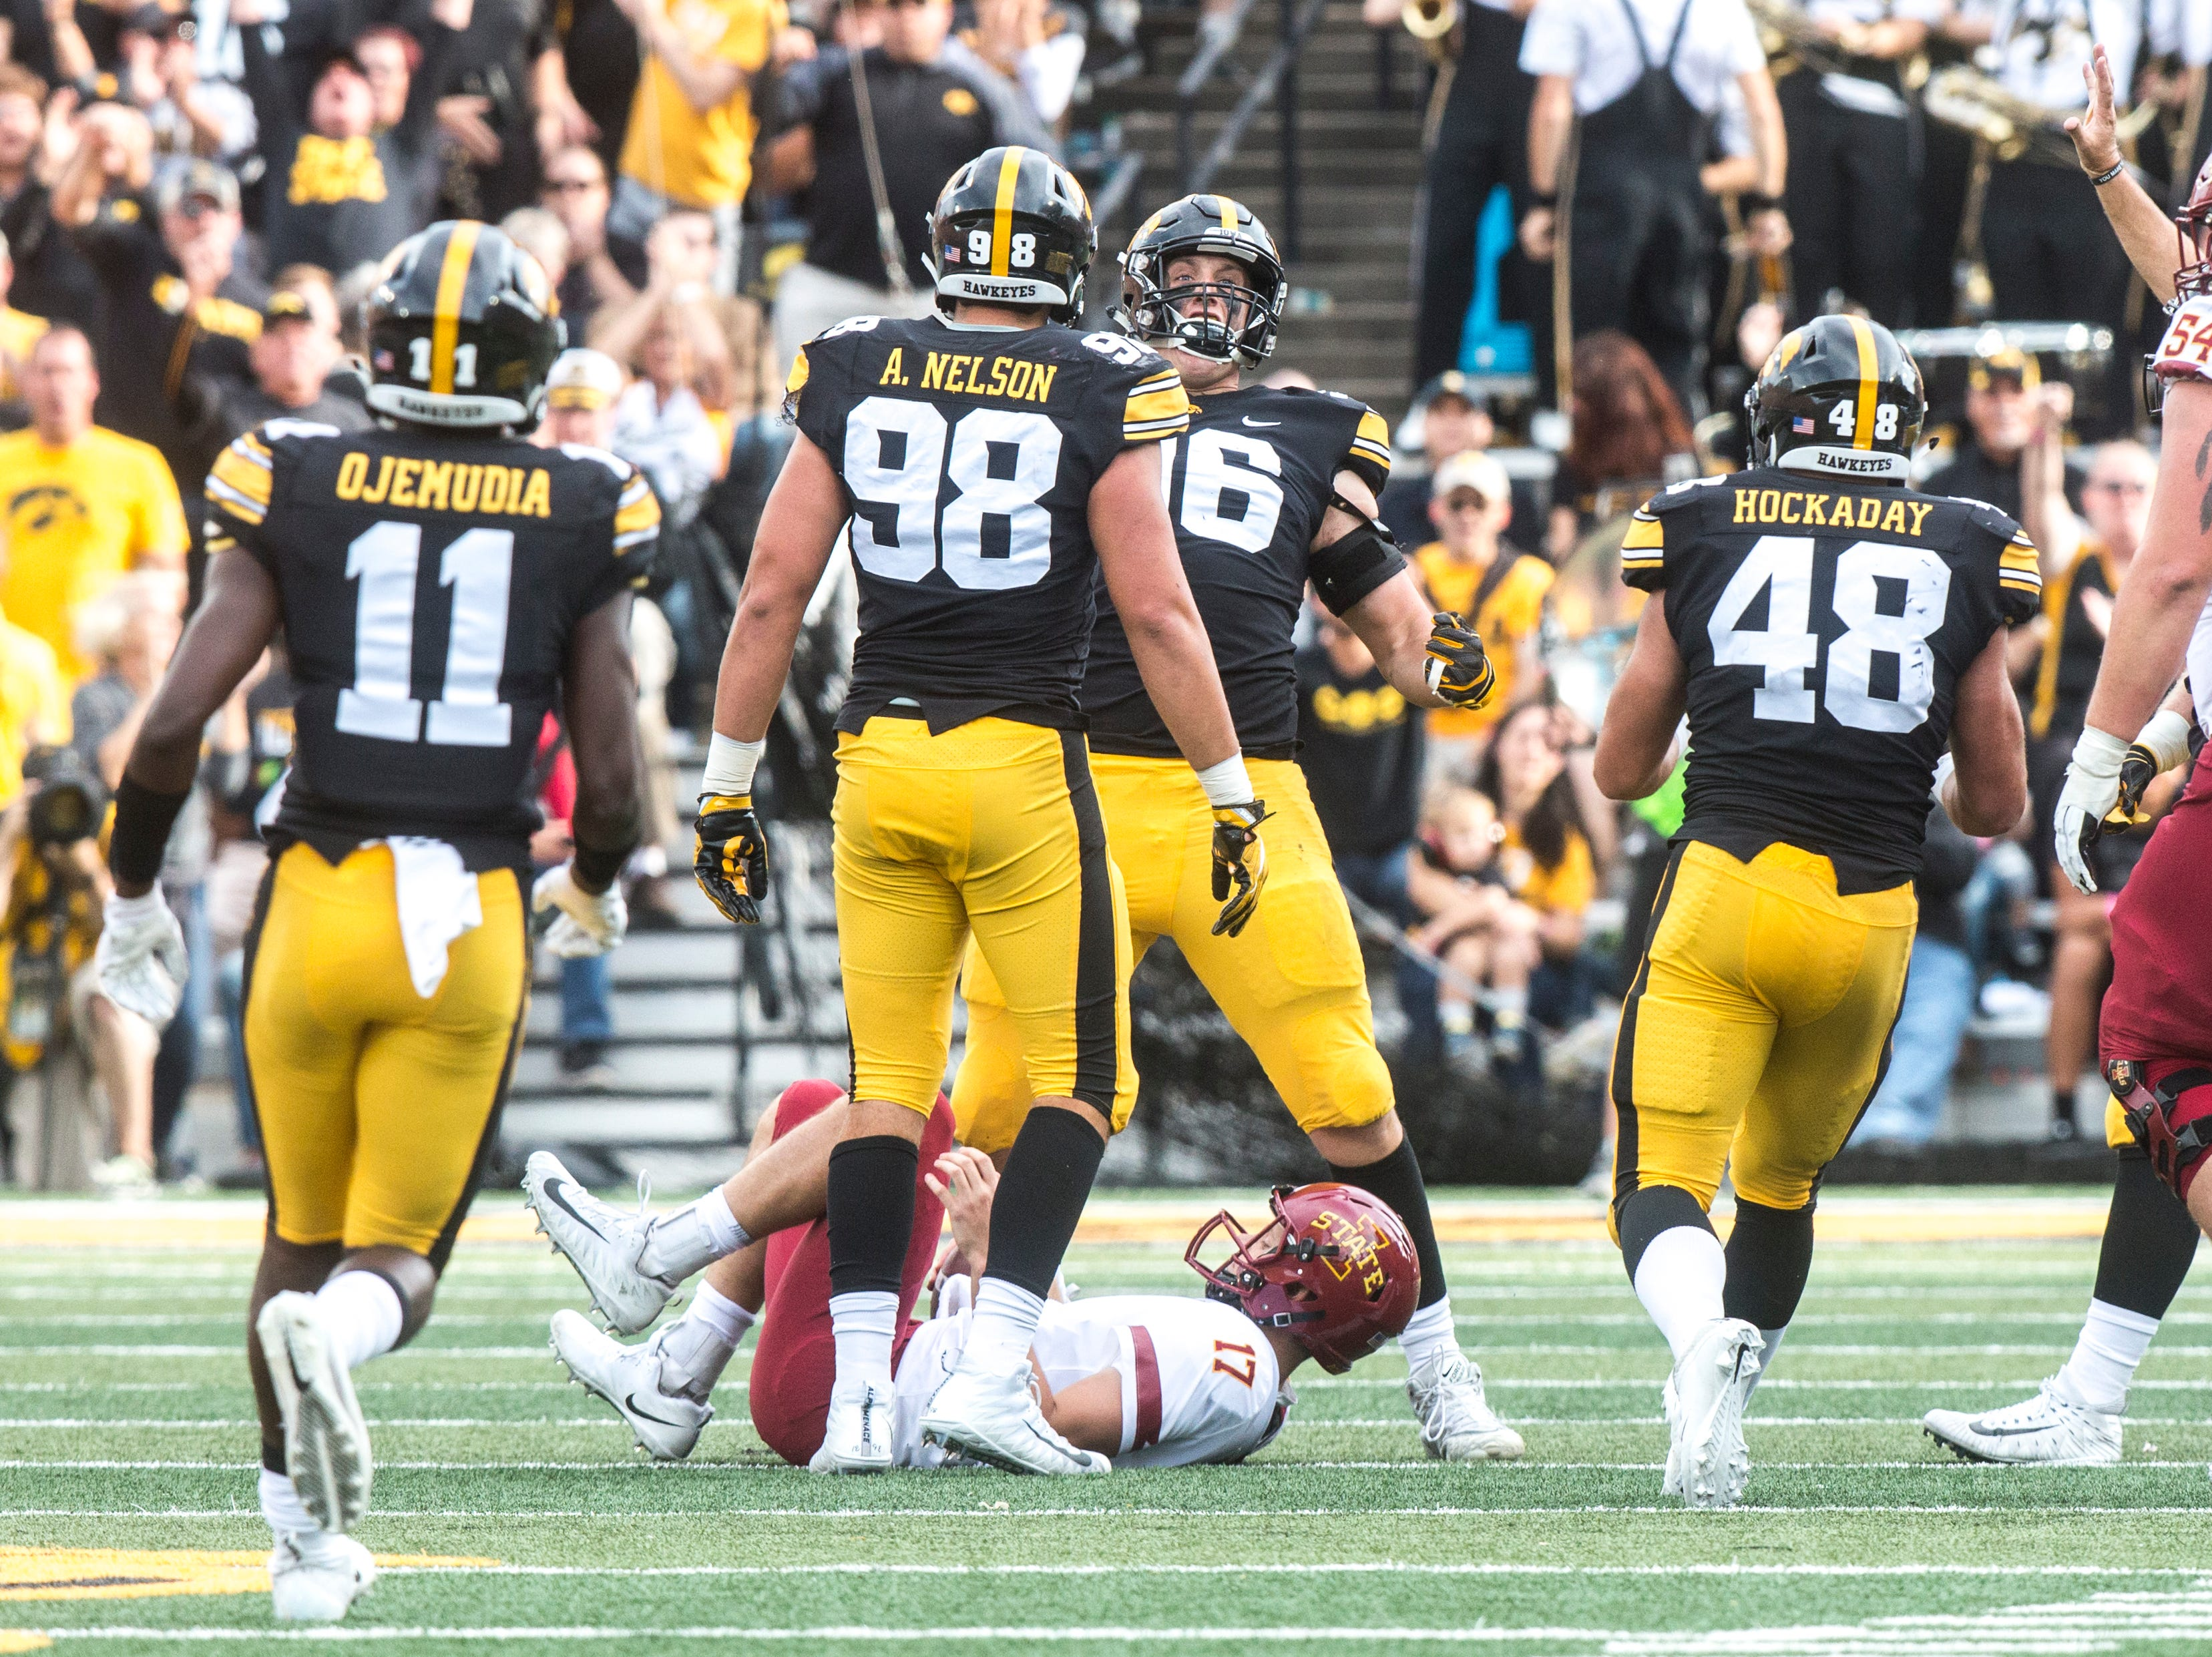 Iowa defensive end Matt Nelson (96) celebrates after sacking Iowa State quarterback Kyle Kempt (17) during the Cy-Hawk NCAA football game on Saturday, Sept. 8, 2018, at Kinnick Stadium in Iowa City.